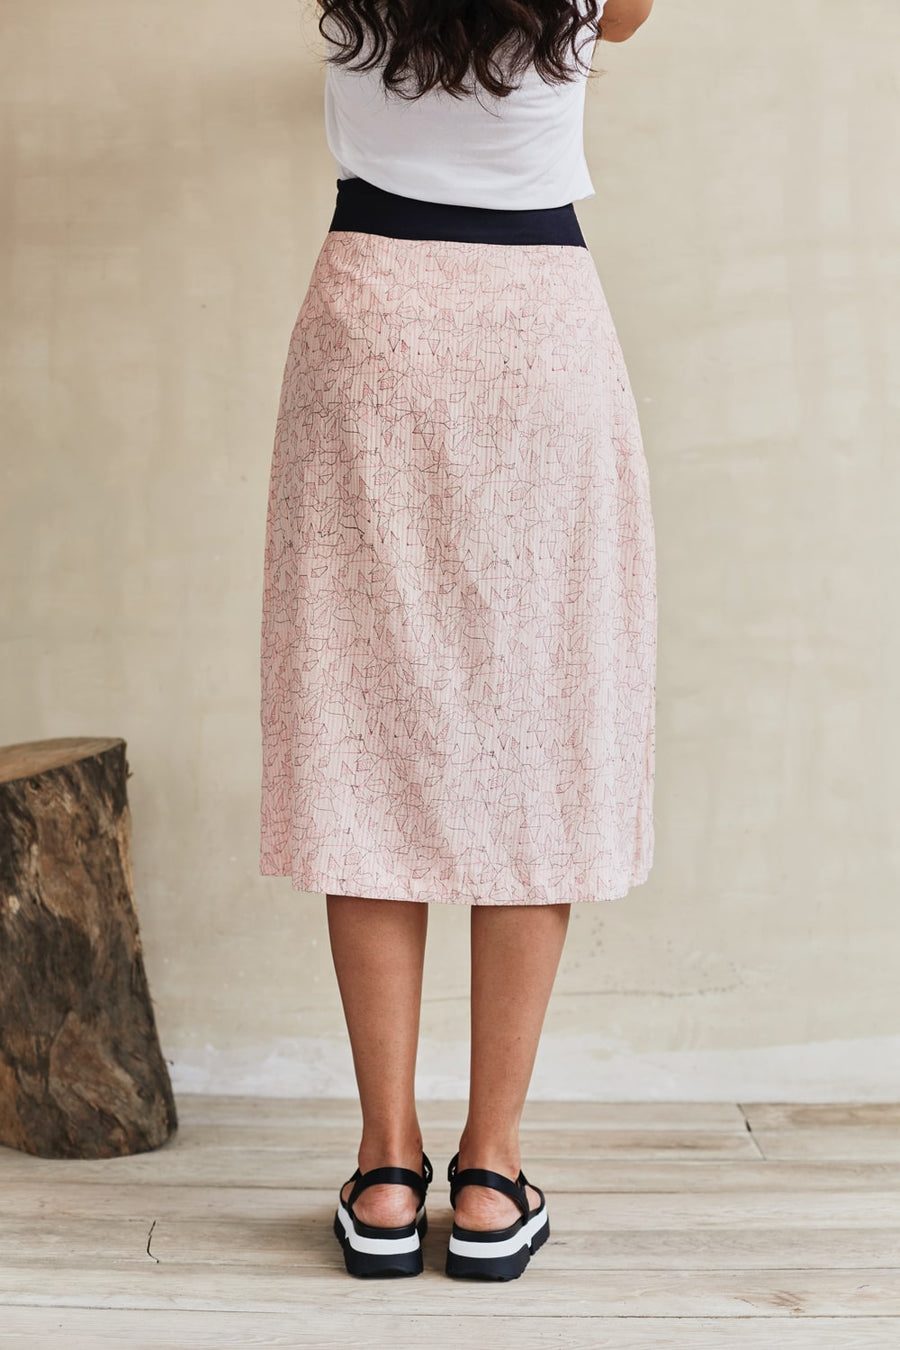 Pleated Flounce Midi Skirt - Ethical made fashion - onlyethikal